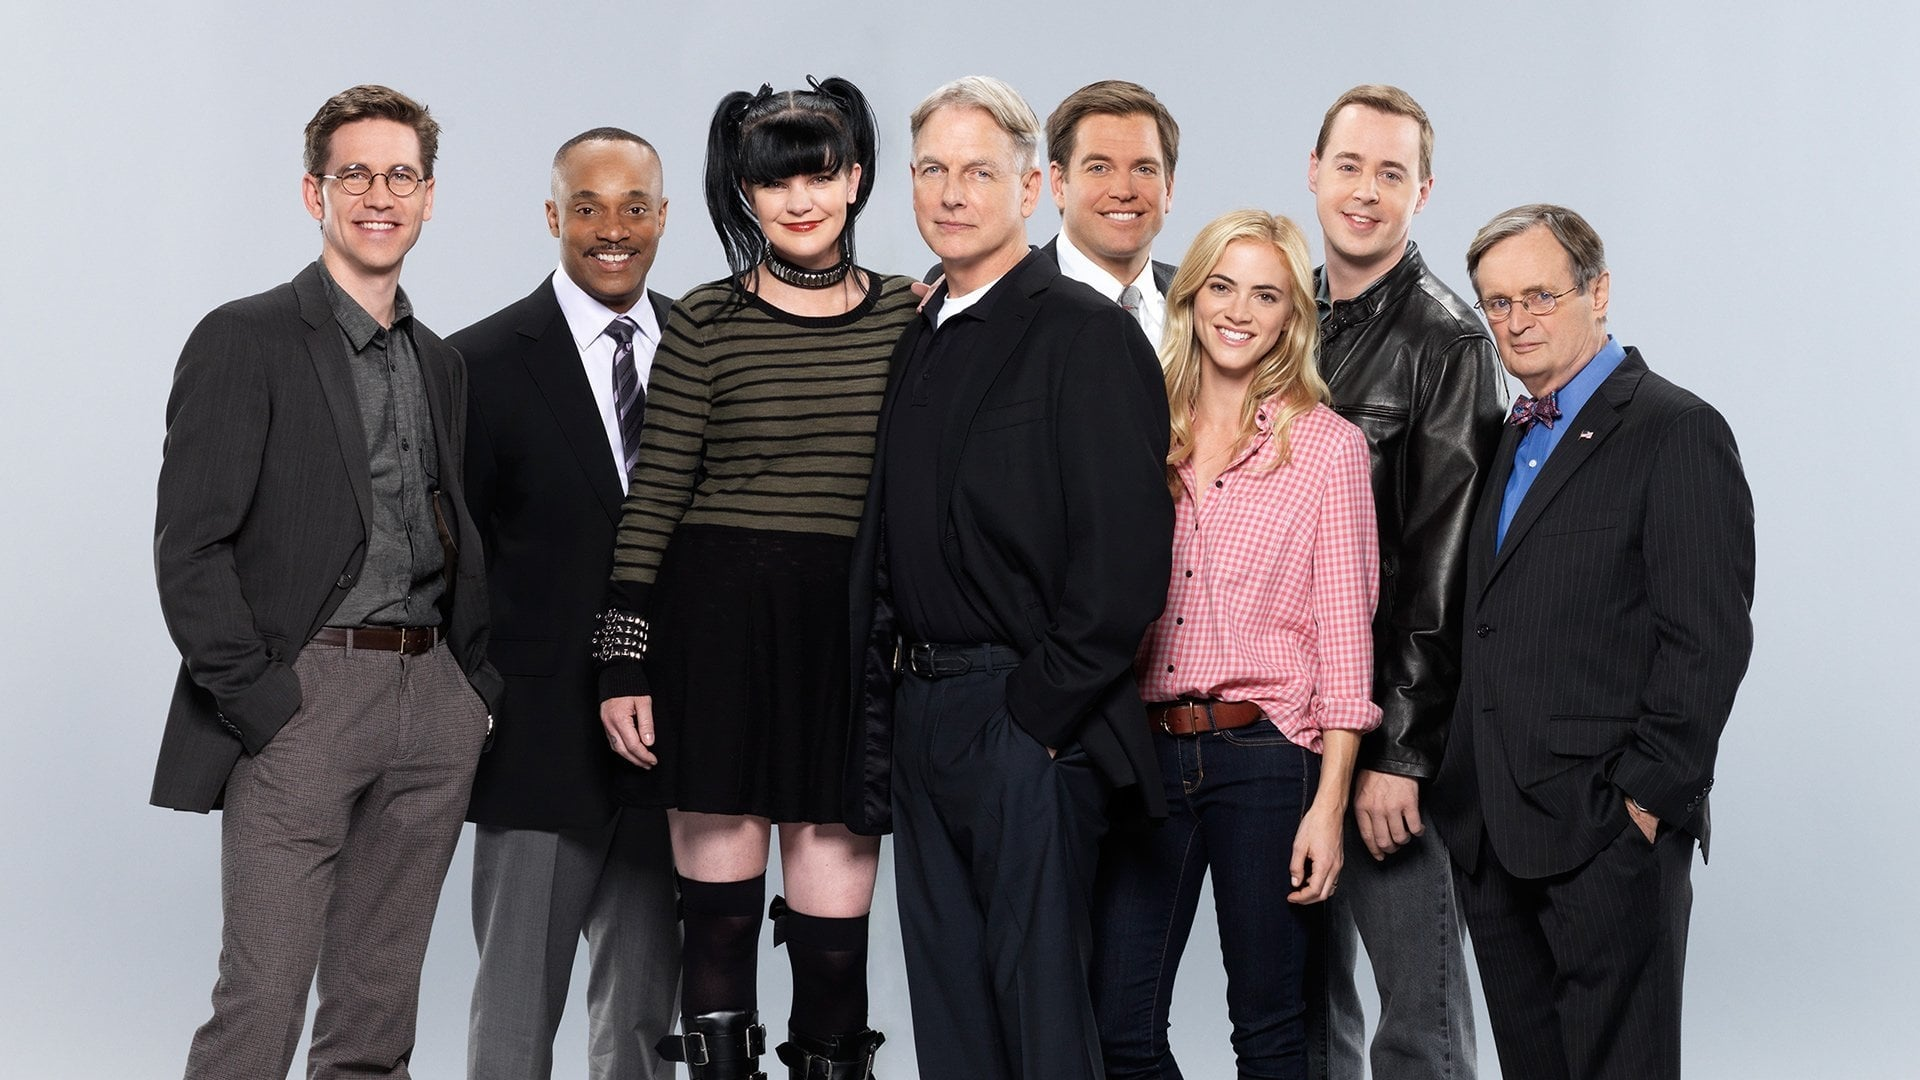 NCIS - Season 0 Episode 38 : Season 6: Cruising Along